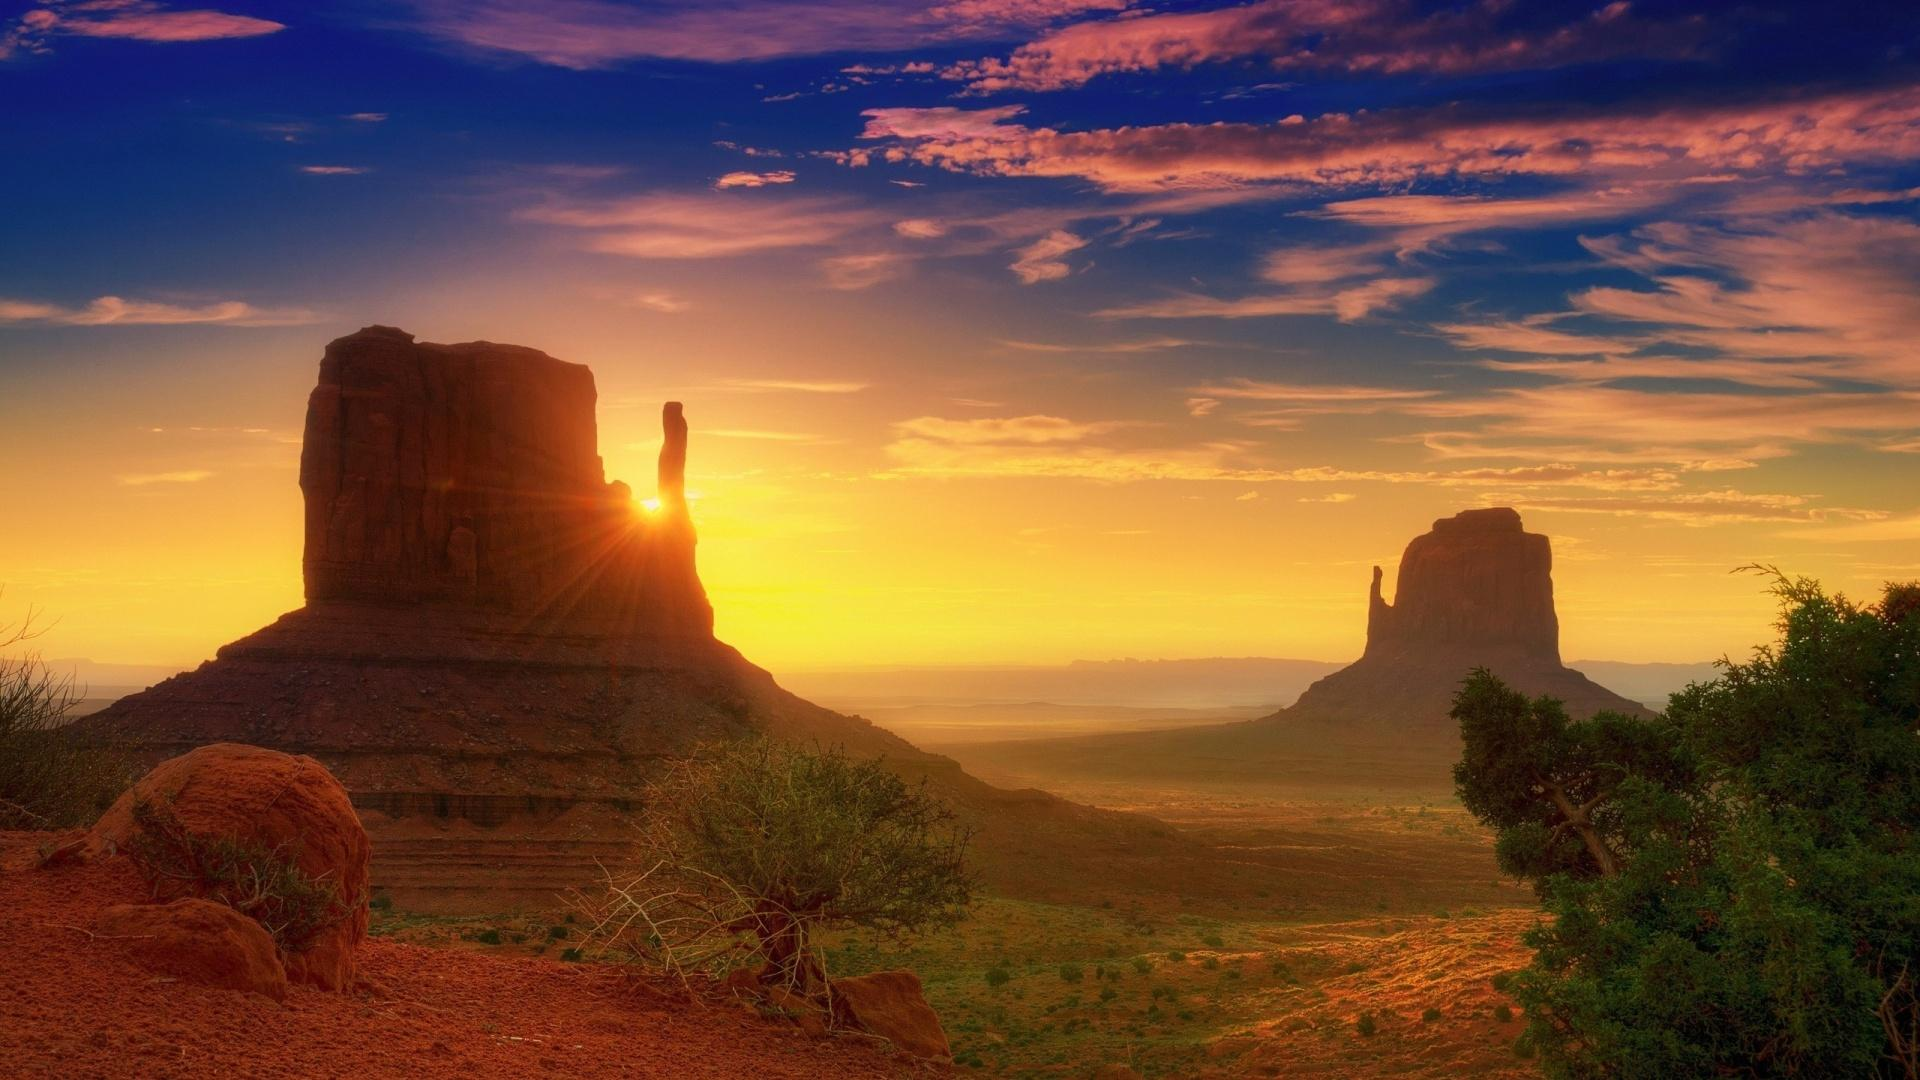 Ending-the-week-with-a-photo-of-a-beautiful-sunset-over-Monument-Valley-Breathtaking-isn-t-it-wallpaper-wp3405237